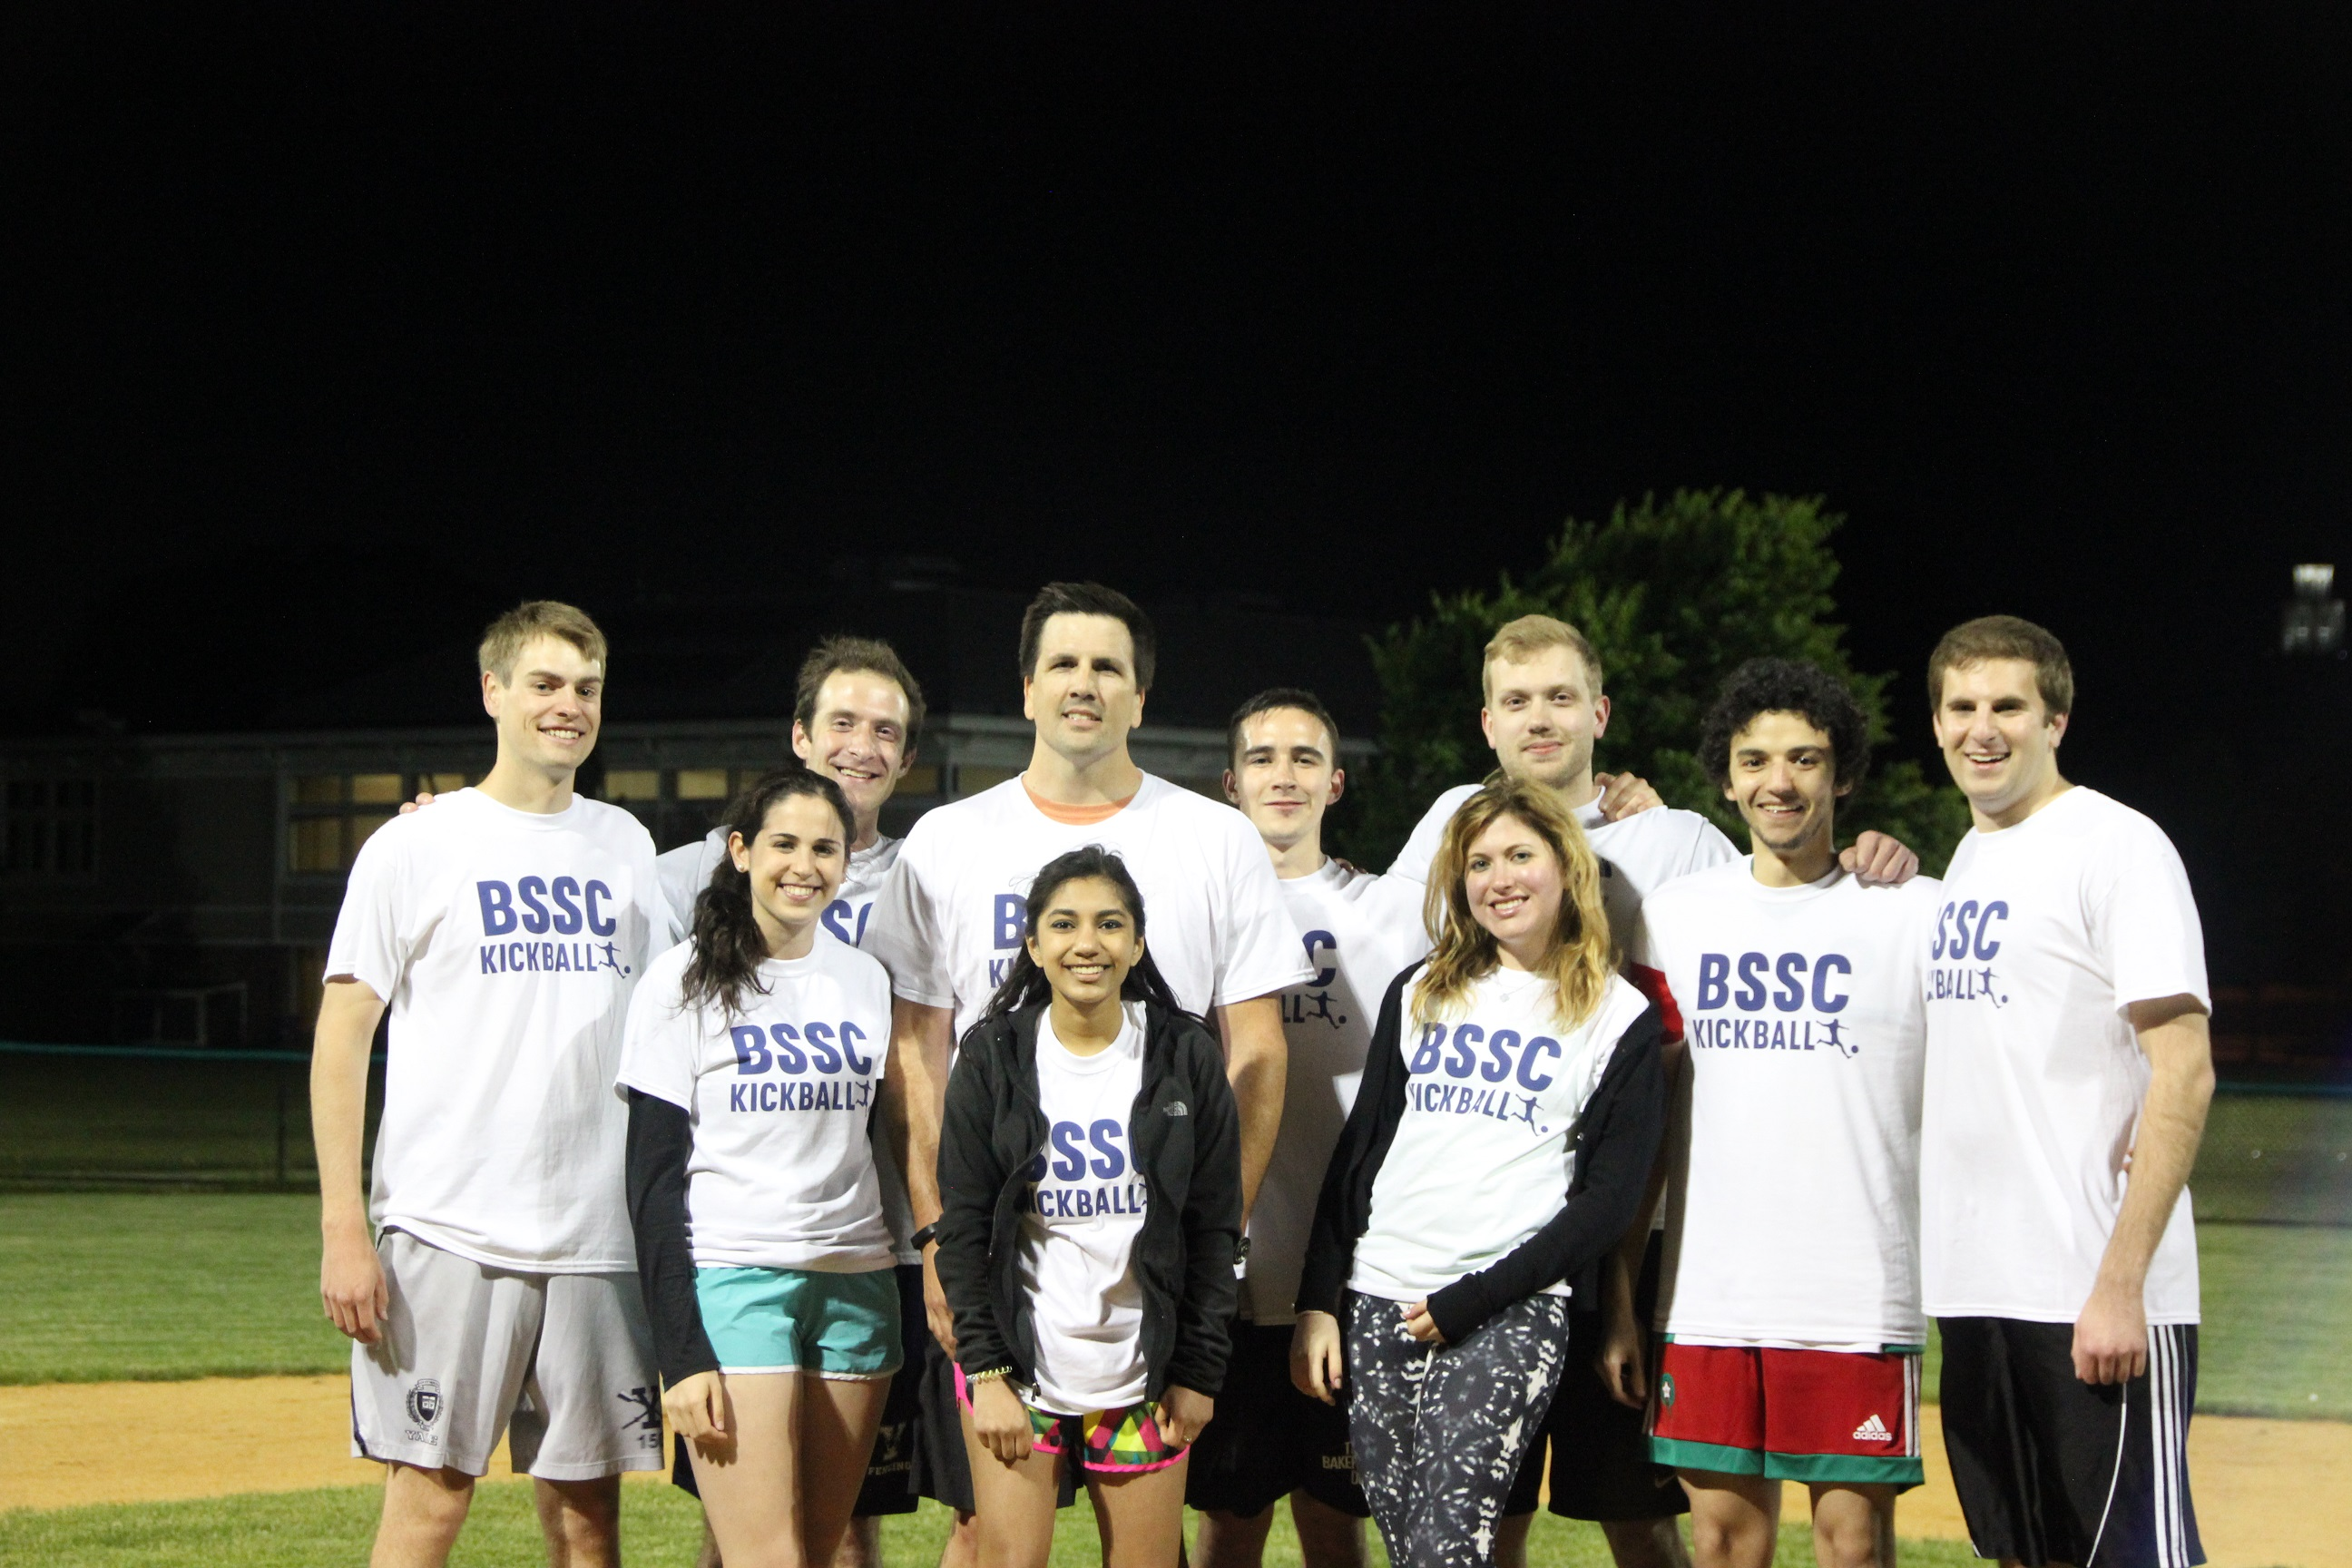 AV&Co. takes pride in its kickball team